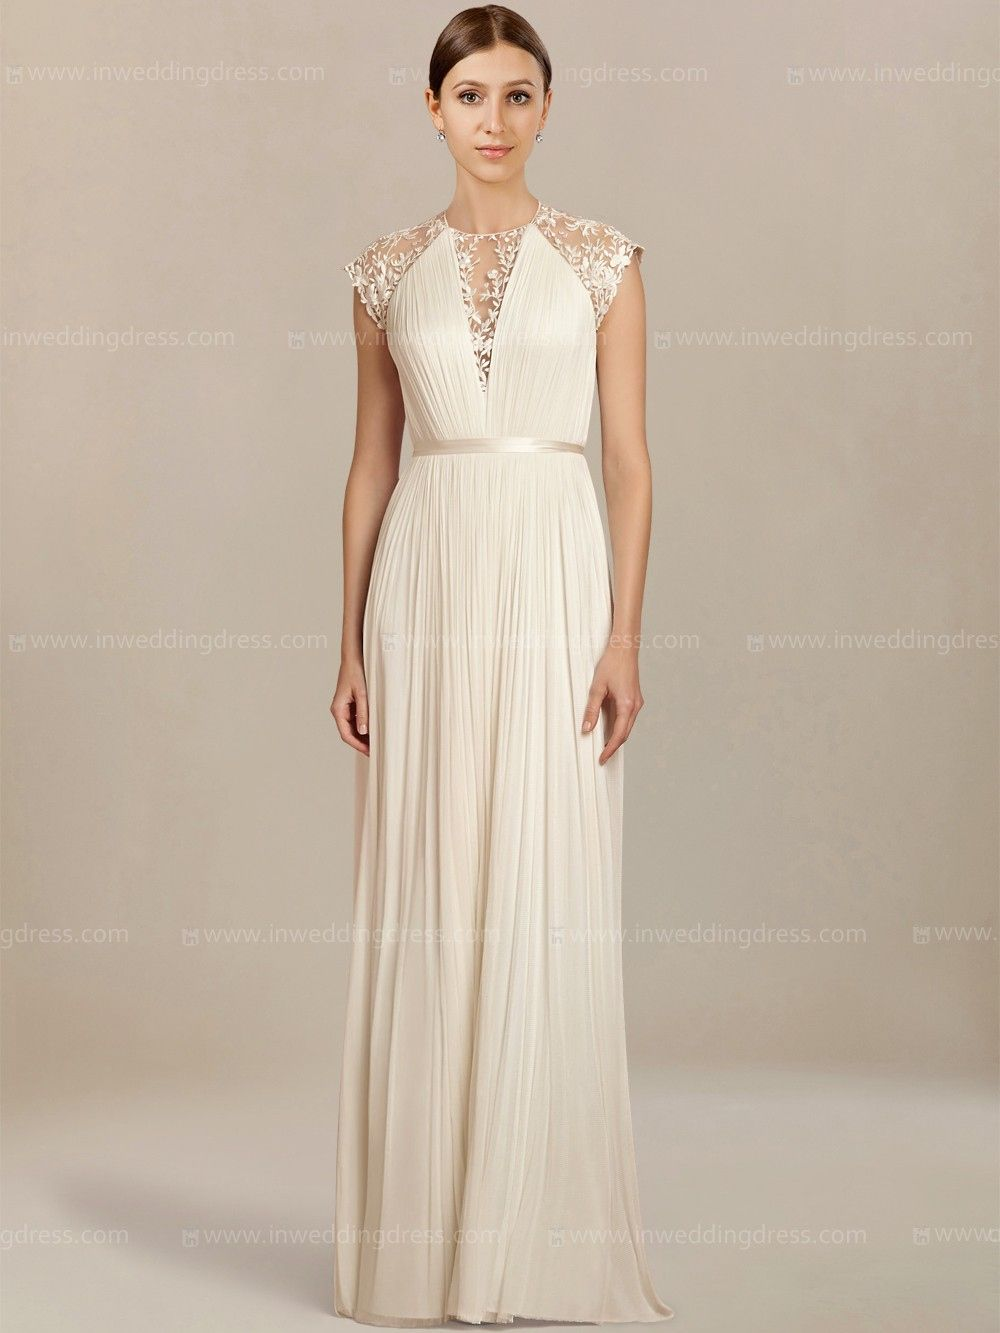 Simple Inexpensive Wedding Dresses Best Shapewear For Dress Check More At Http Svesty